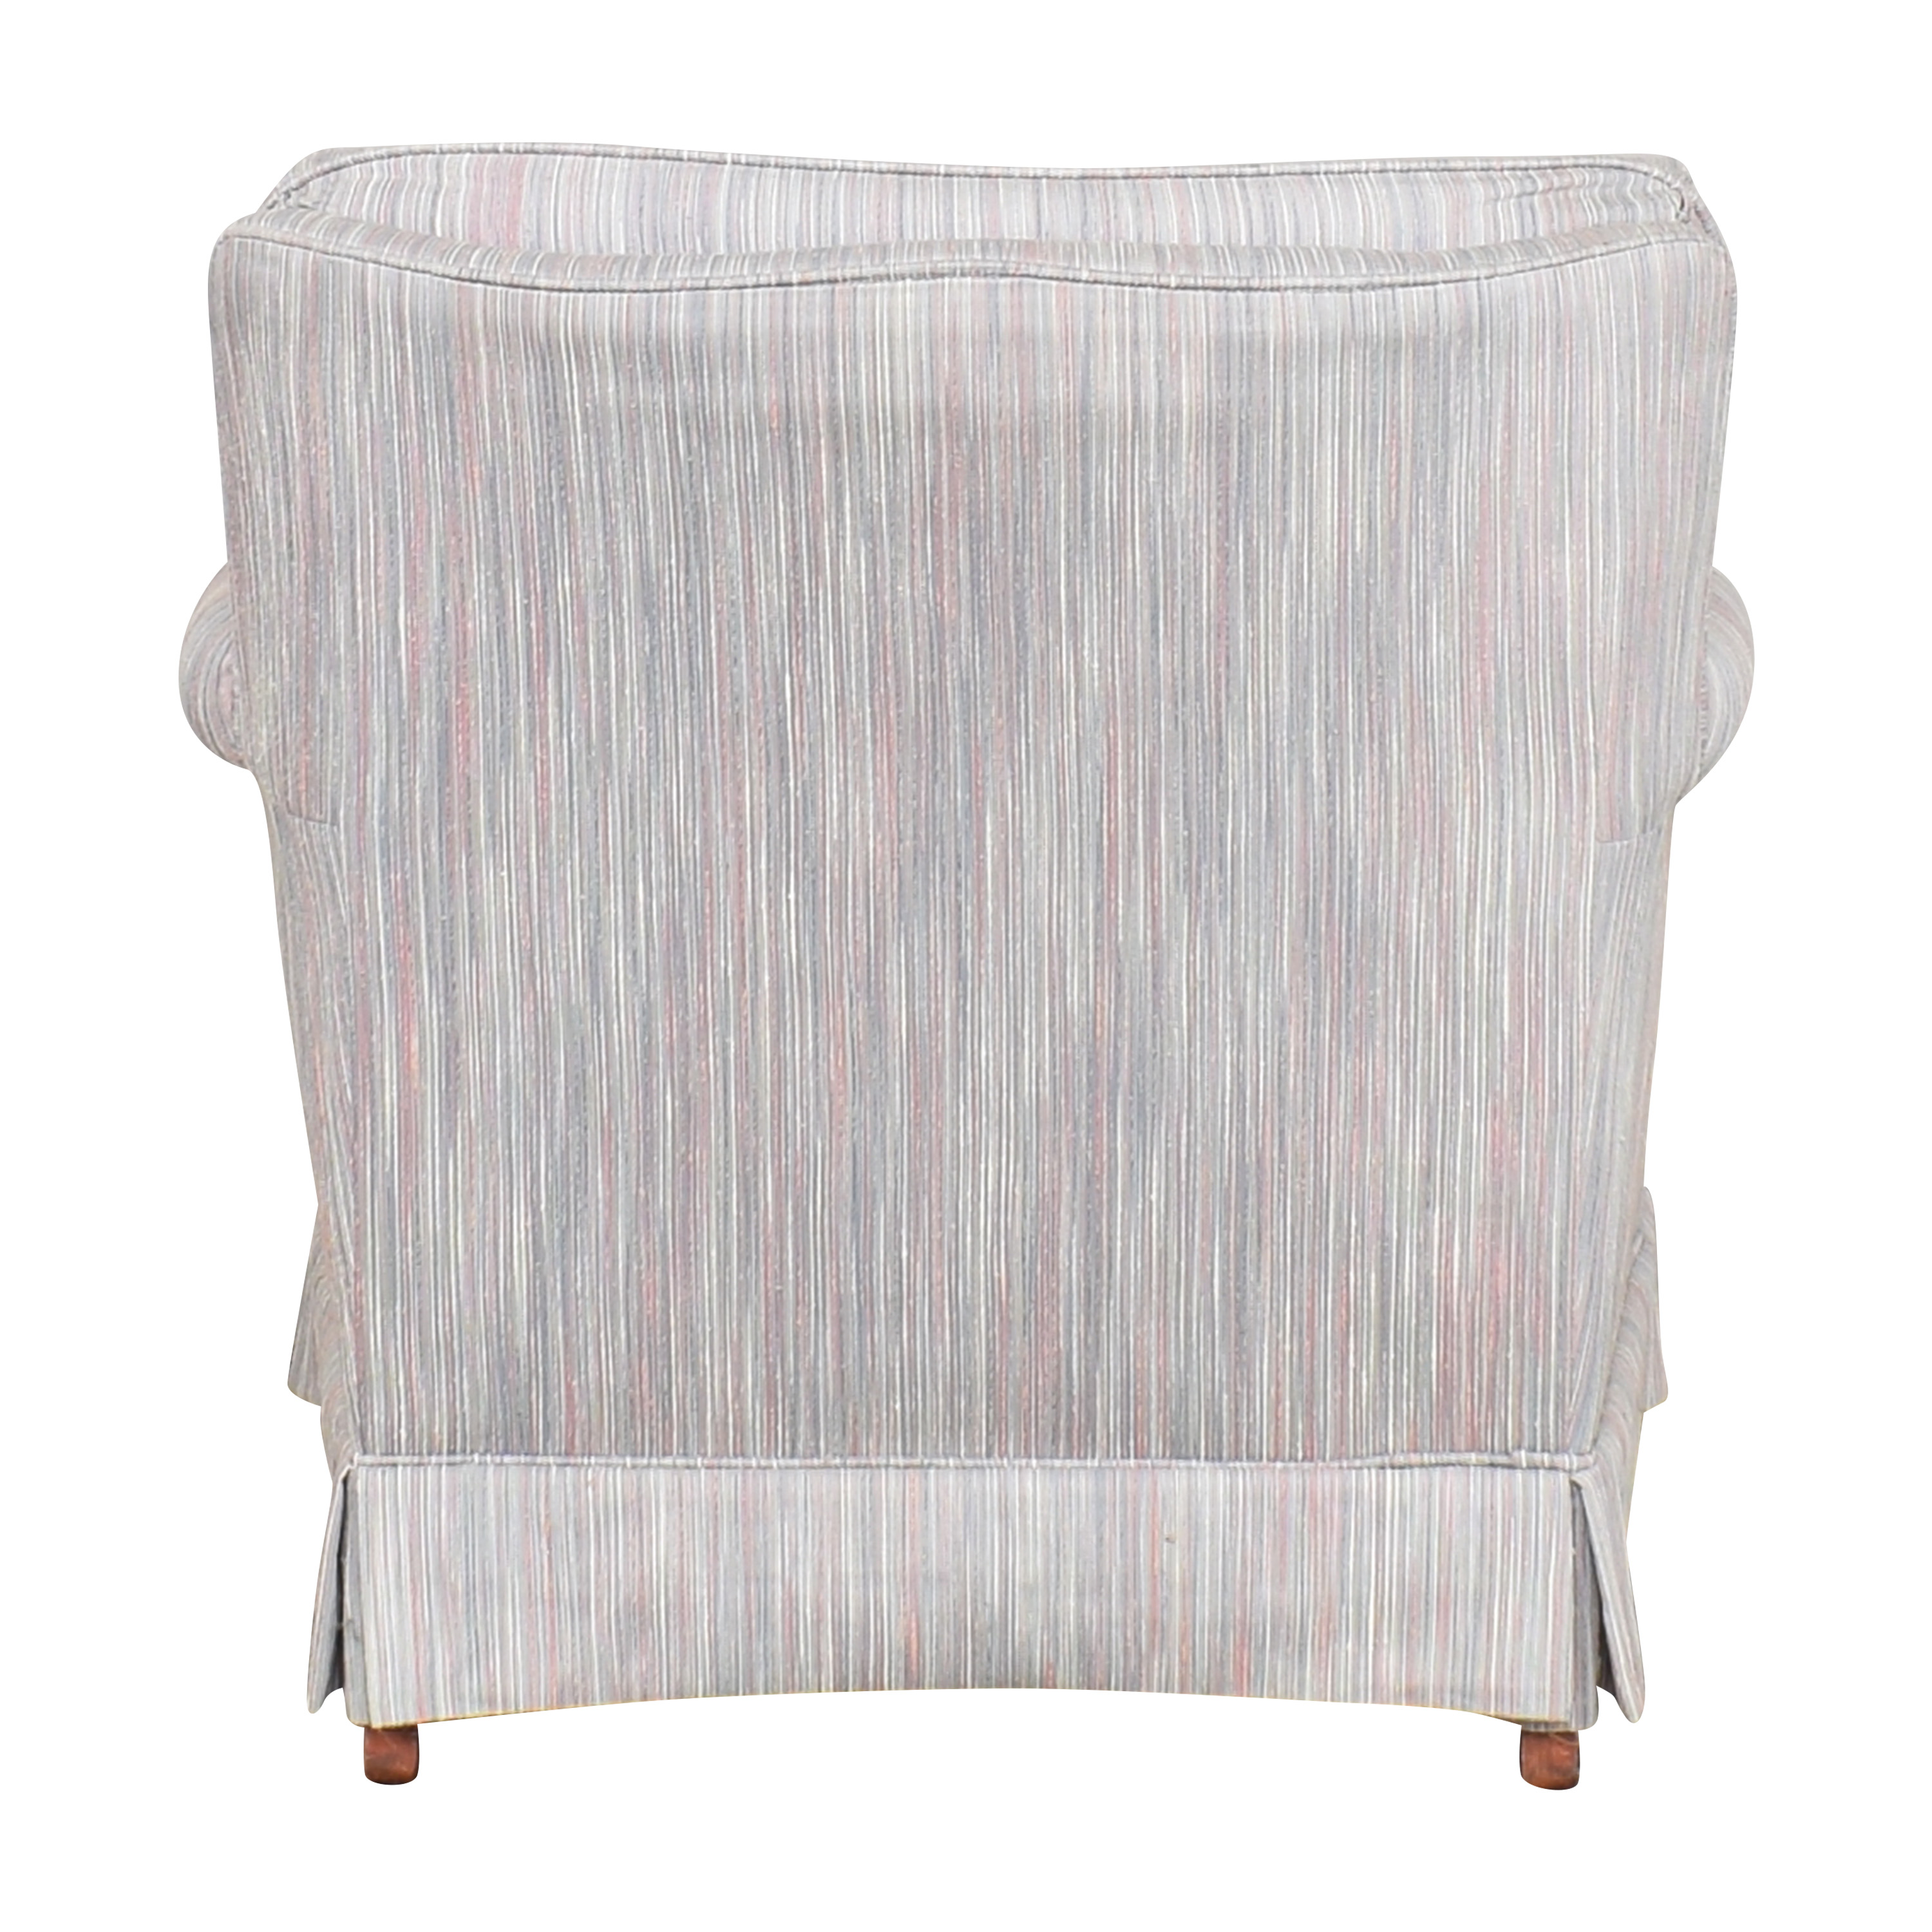 Hickory-Fry Hickory-Fry Tufted Accent Chair multi